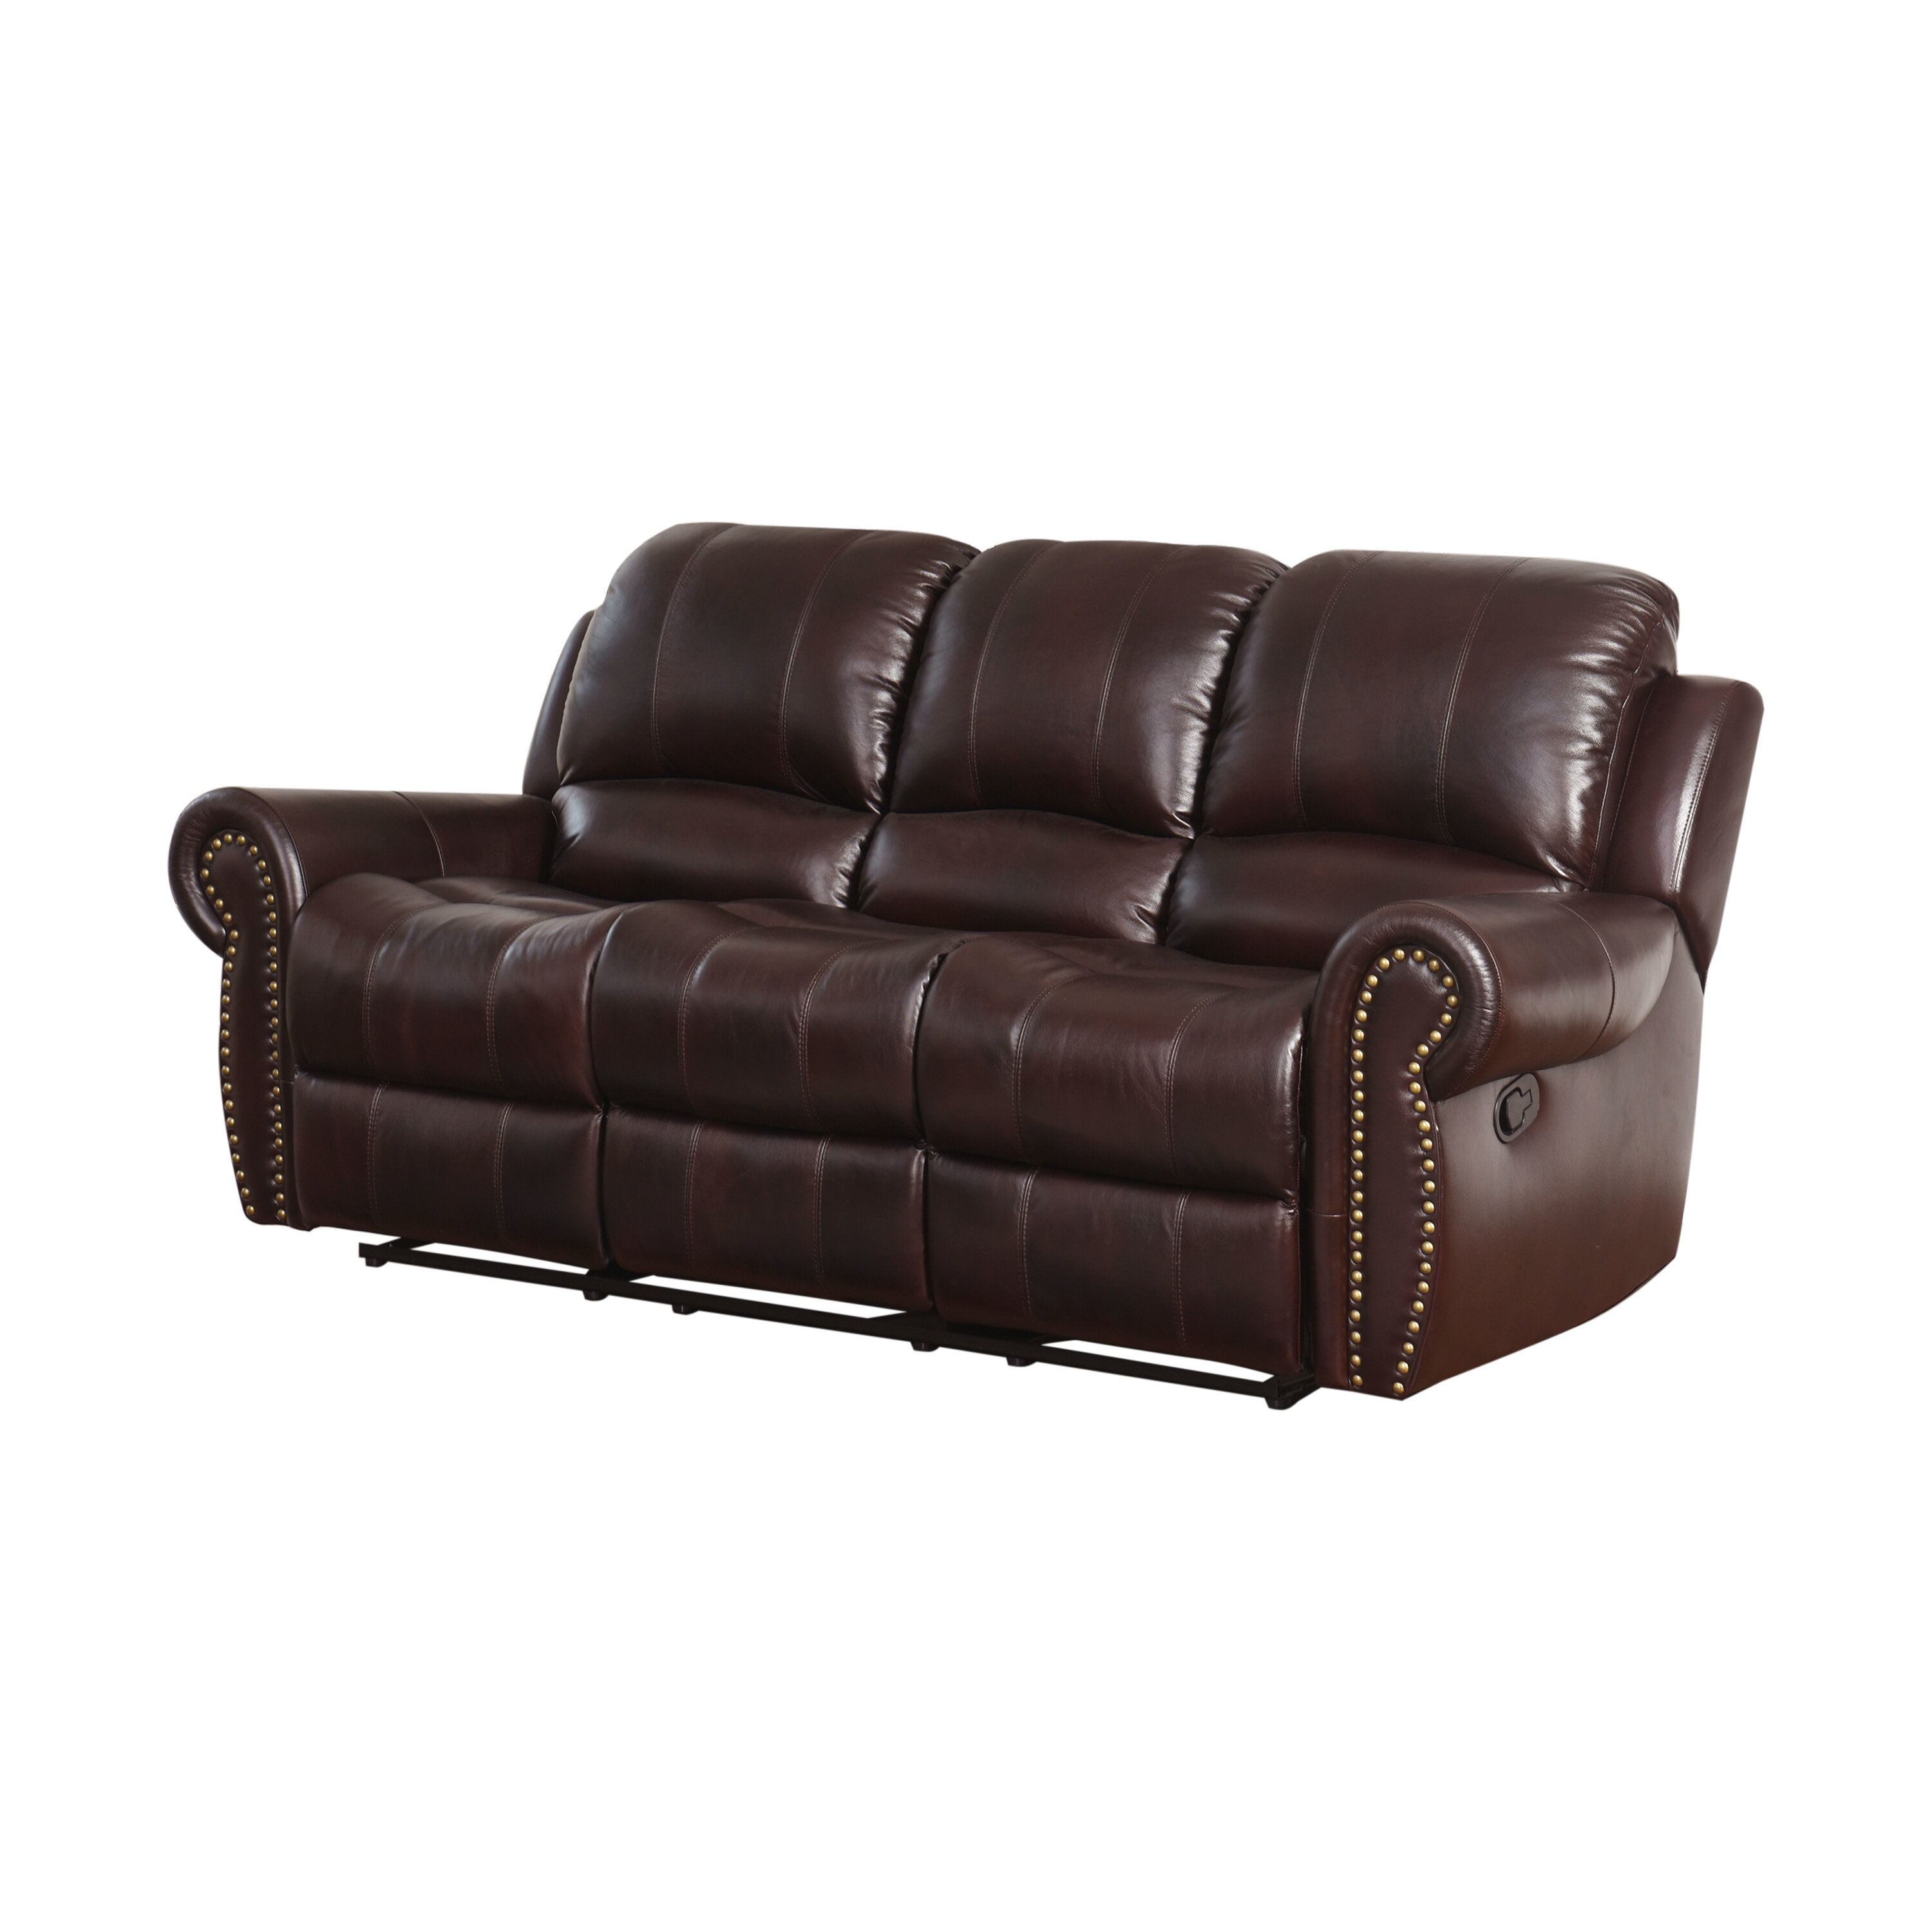 Darby Home Co Barnsdale Leather Reclining Sofa & Reviews | Wayfair